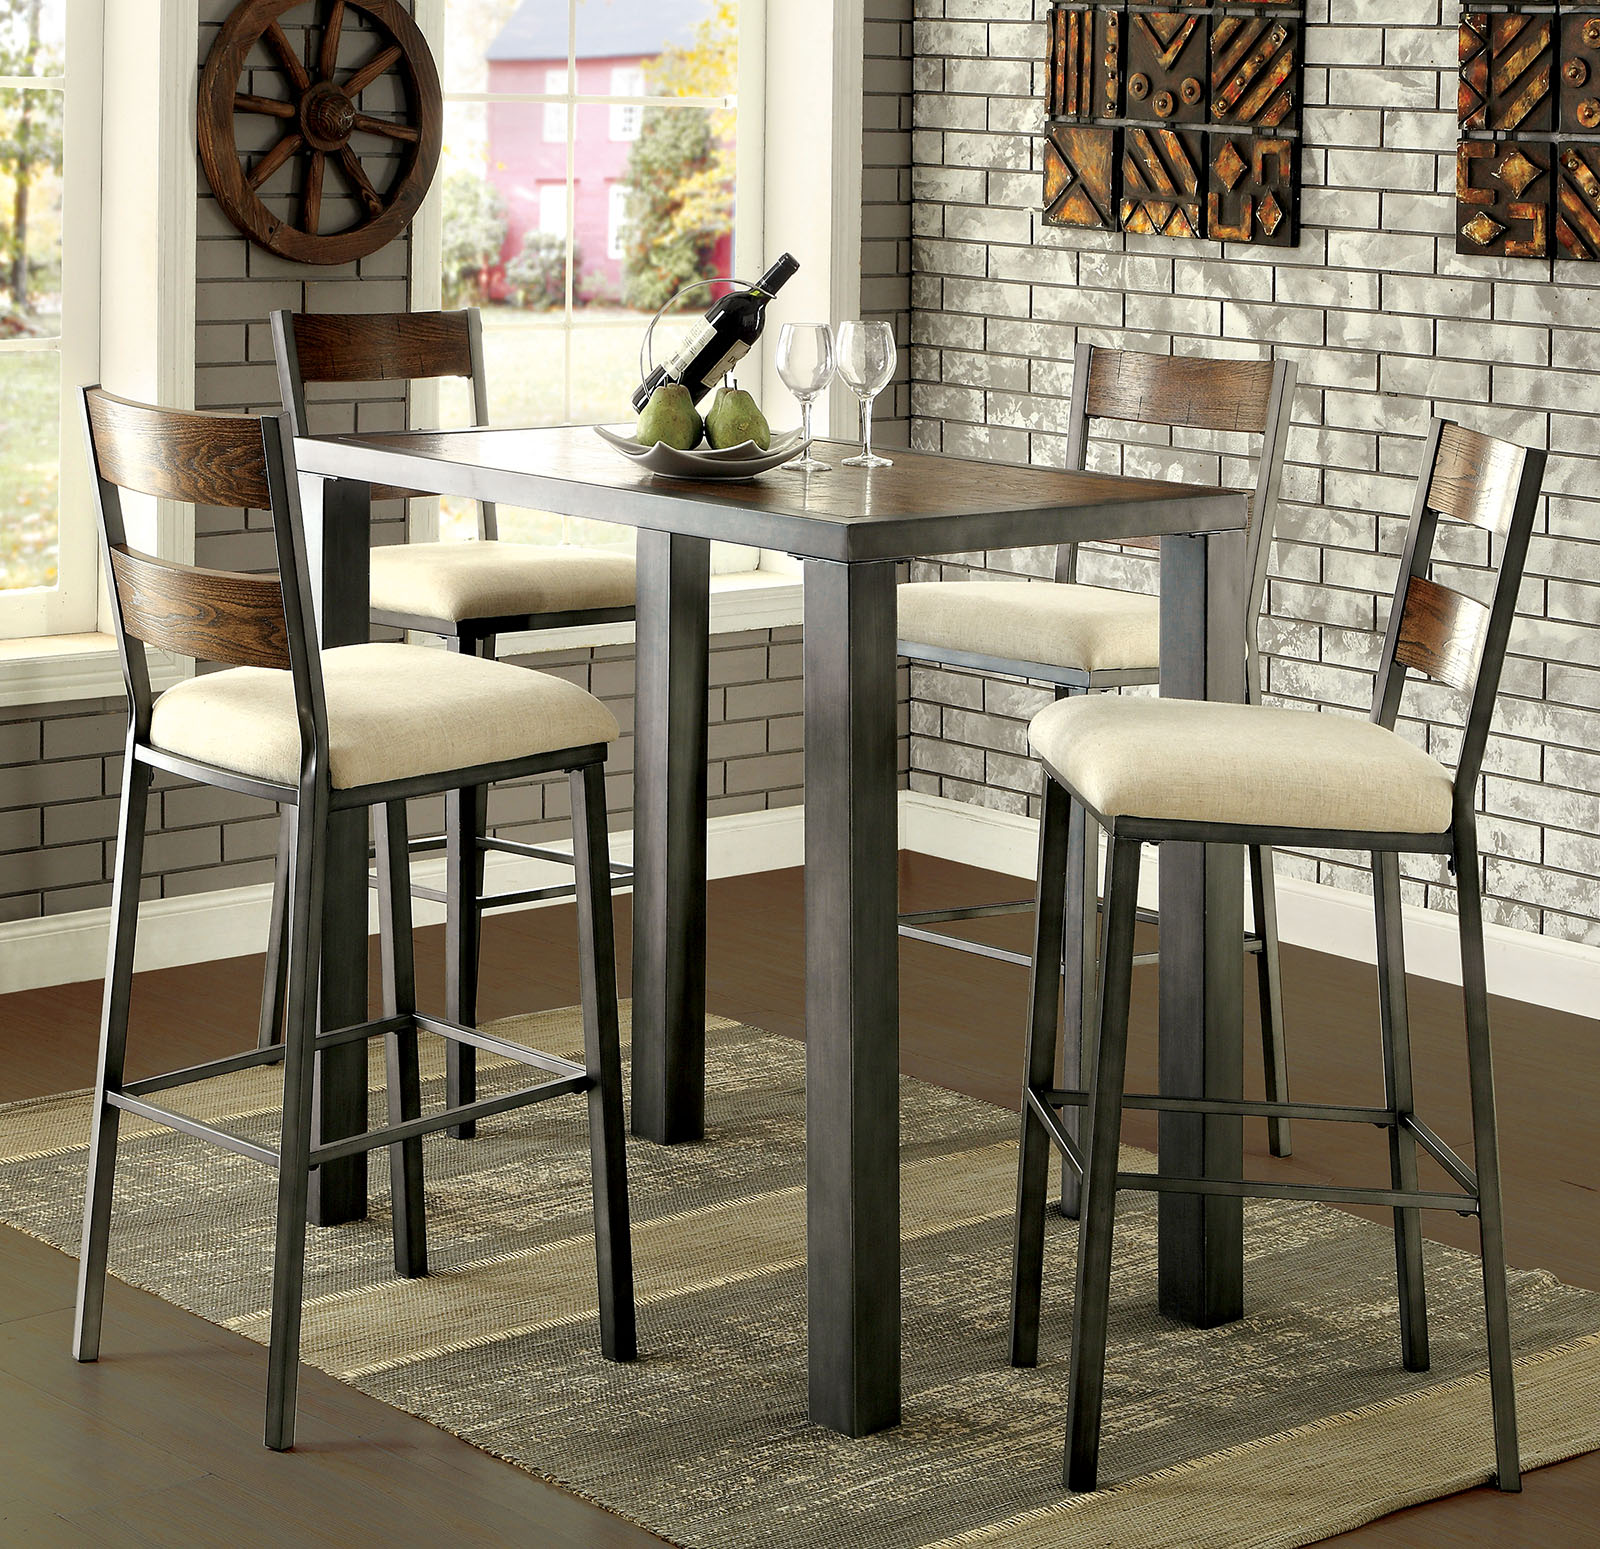 Jazlyn Ii Industrial Bar Table Collection Las Vegas Furniture Store Modern Home Furniture